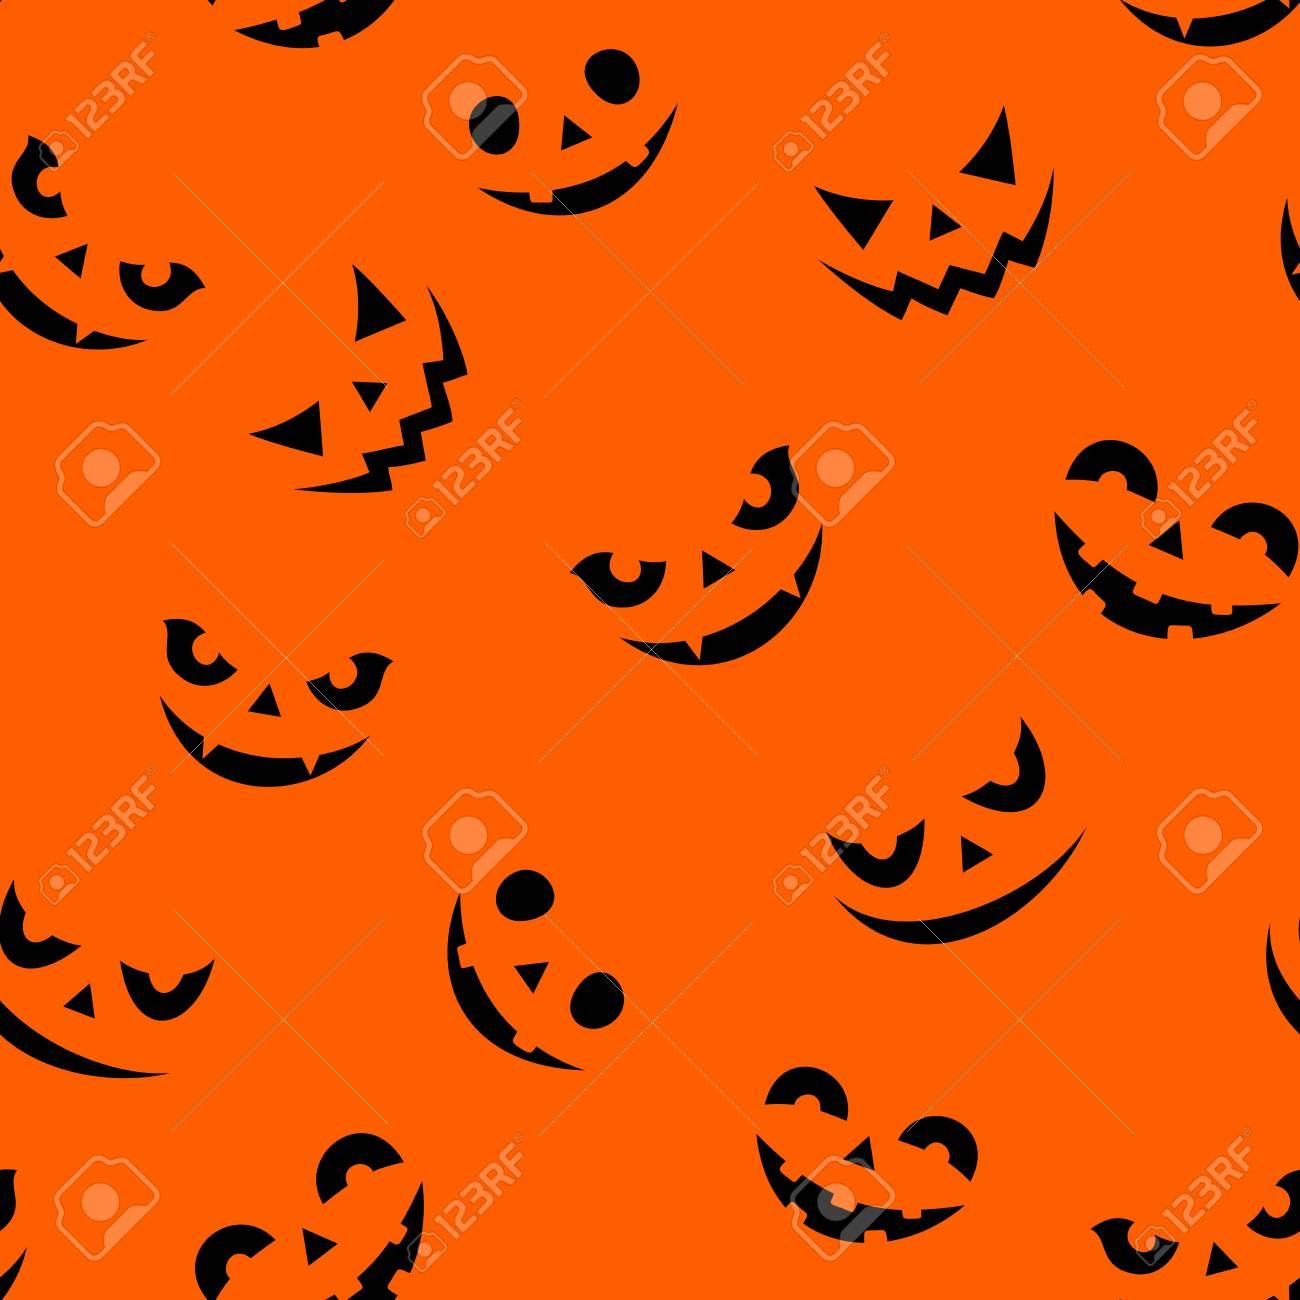 Vector Seamless Pattern With Jack O Lantern Faces On An Orange